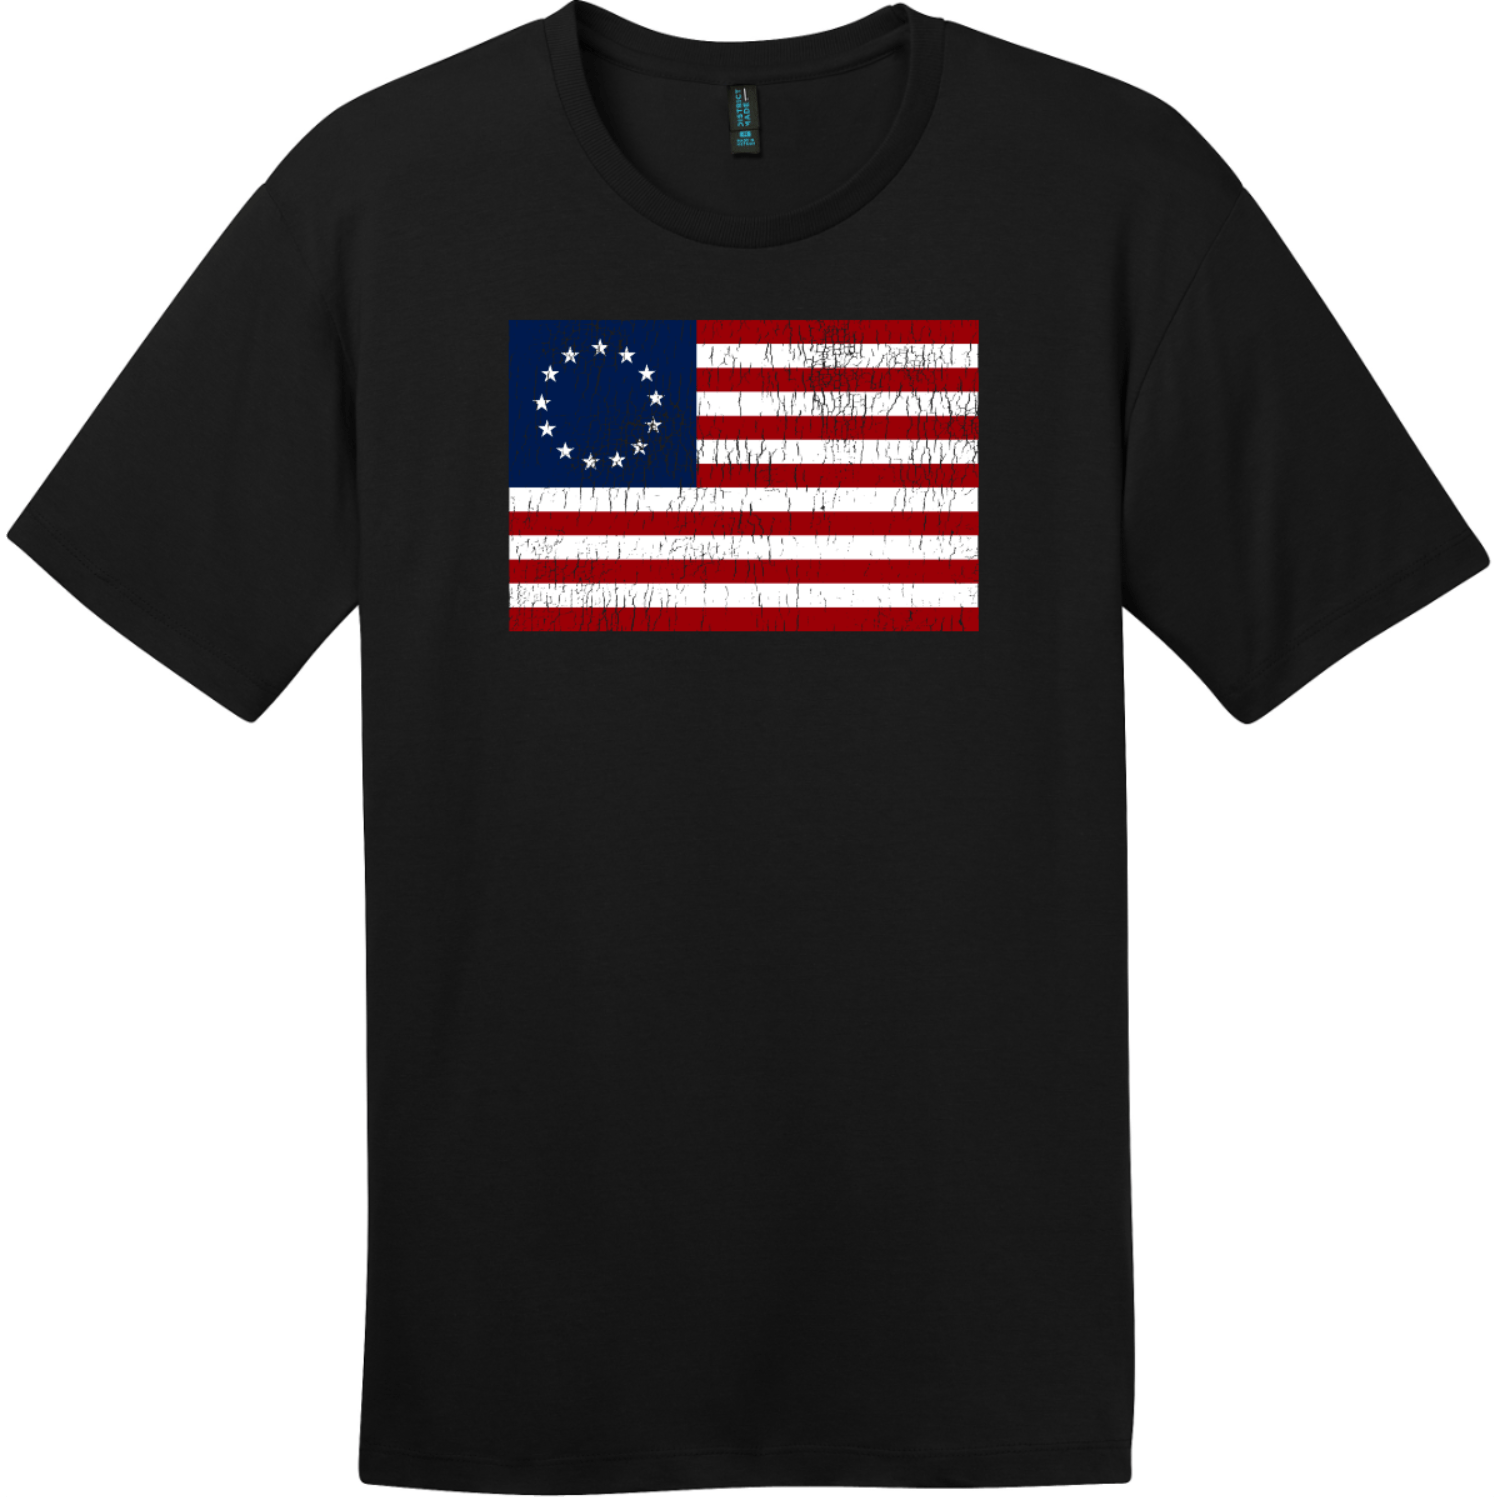 Betsy Ross American Flag Vintage T-Shirt Jet Black District Perfect Weight Tee DT104